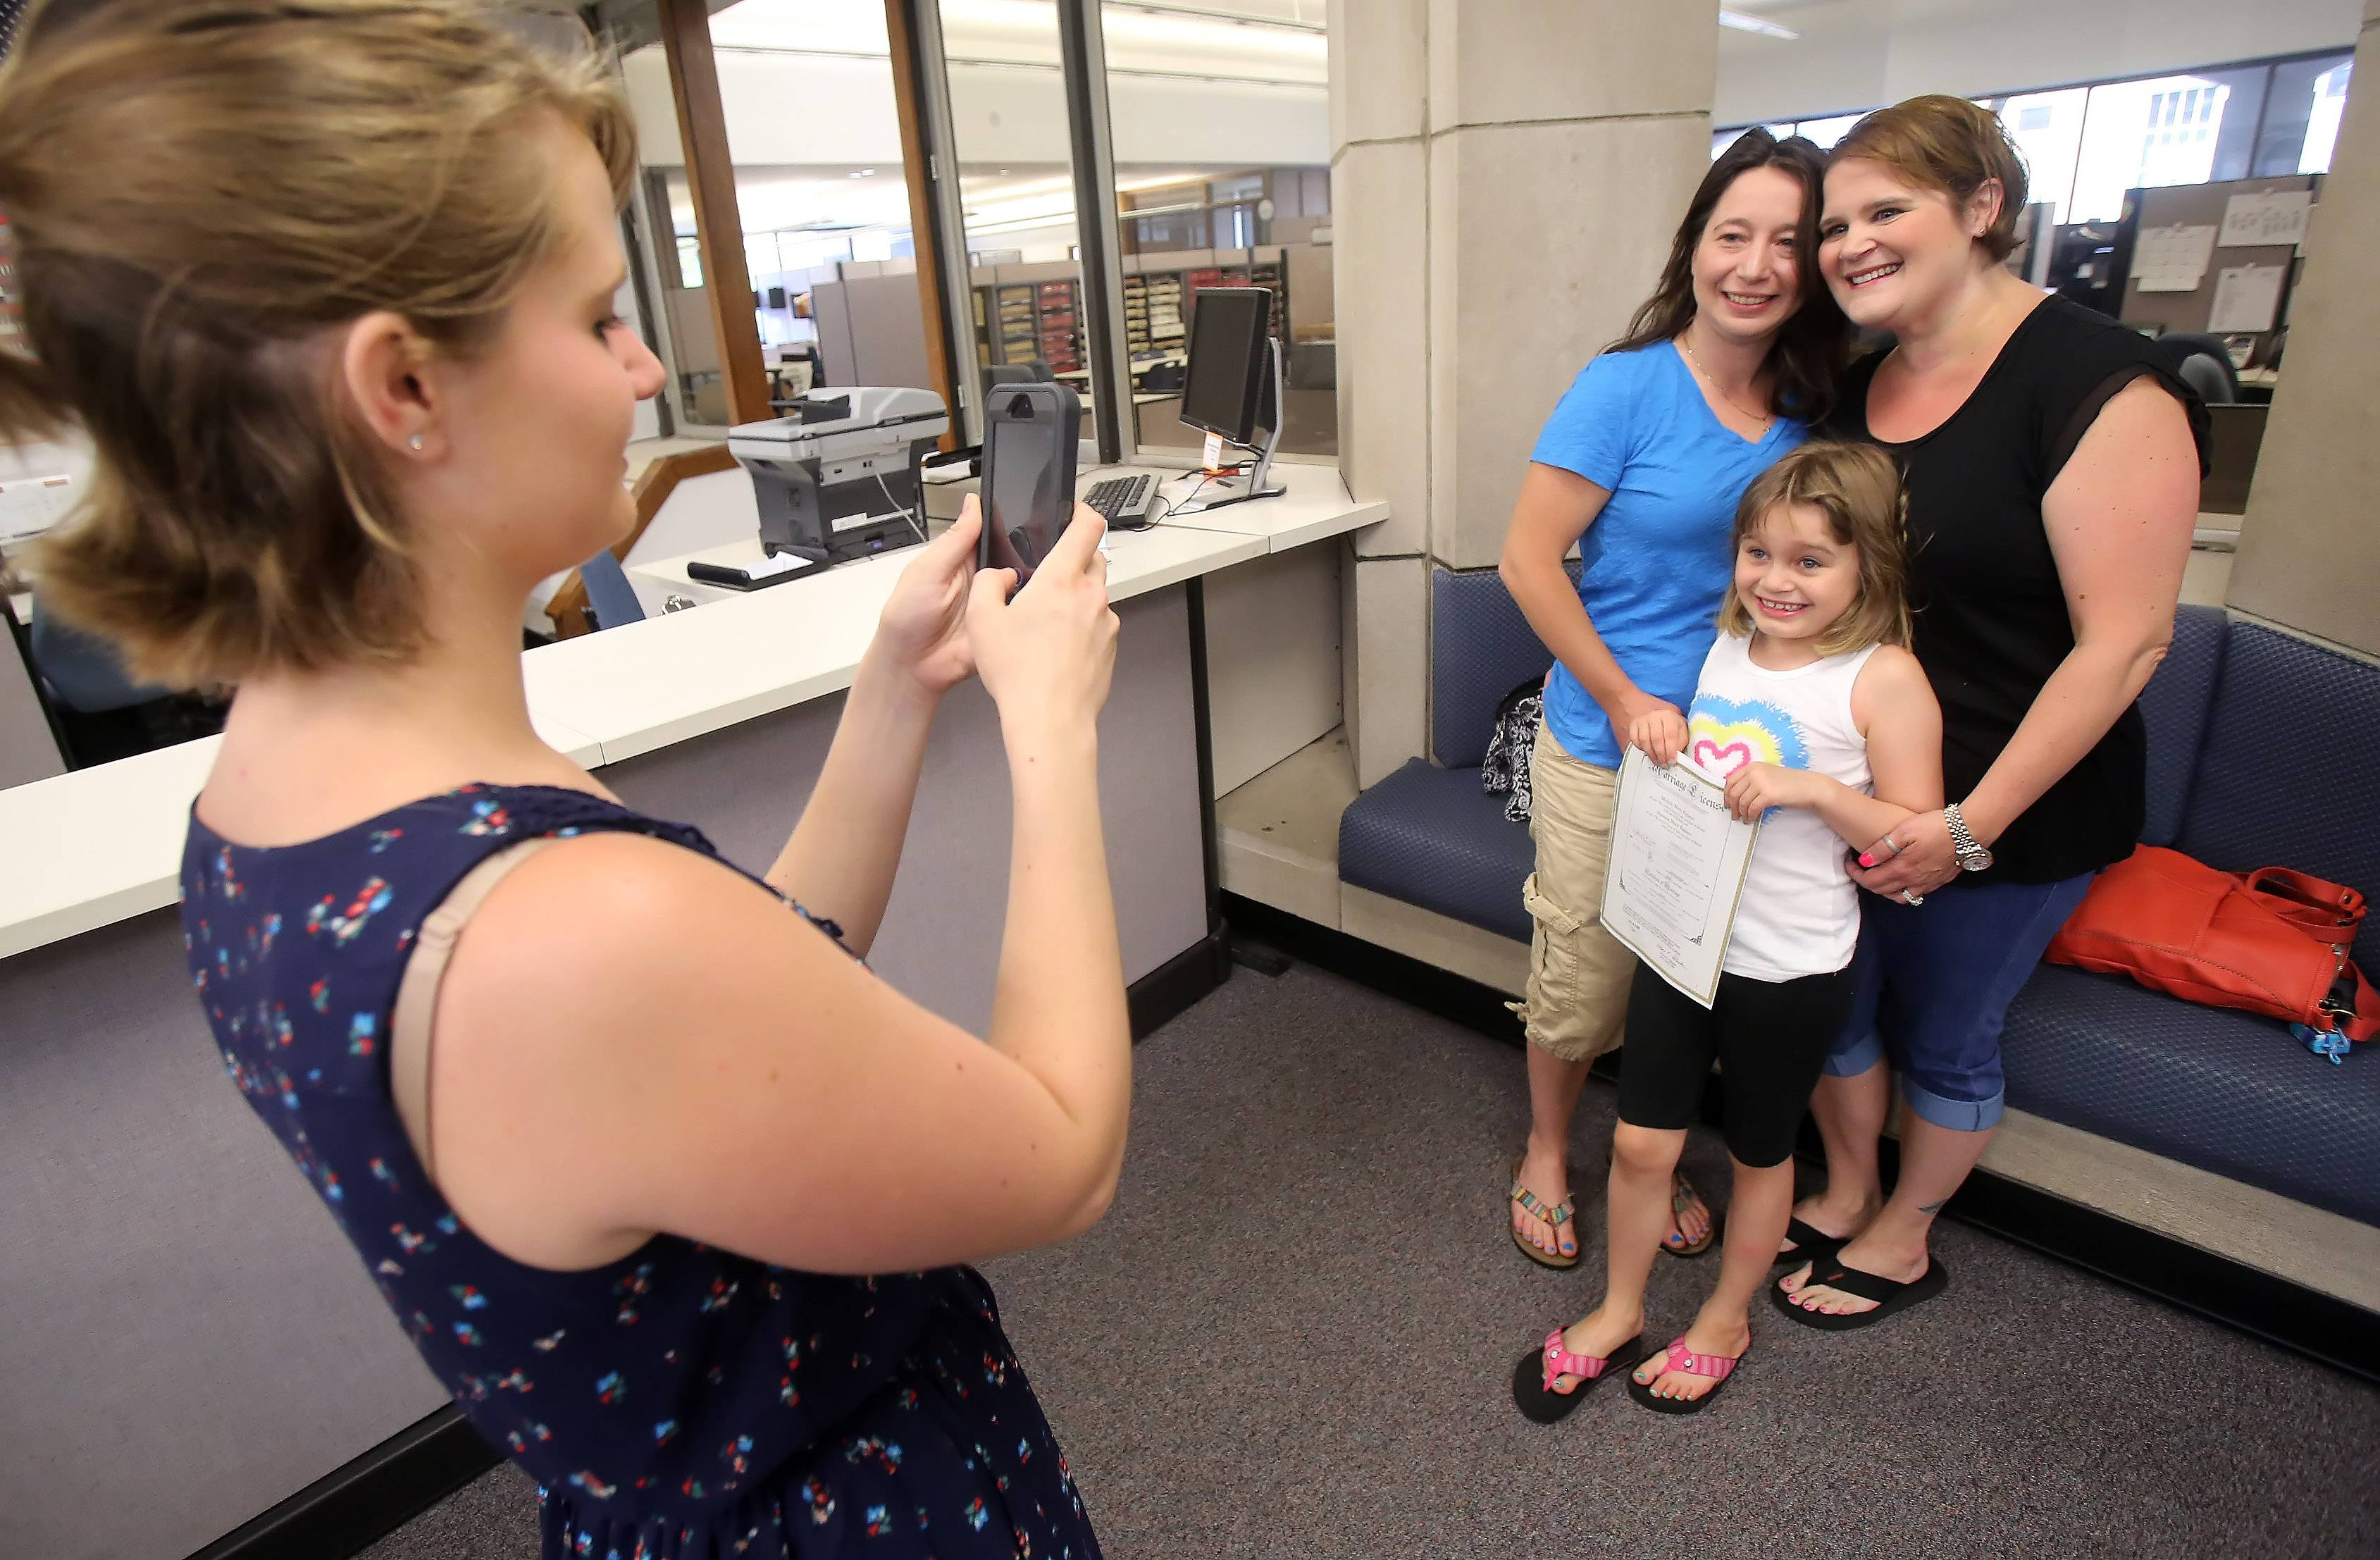 Kendall Welton of Round Lake Beach takes pictures of her sister, Michele Fagiano, right, with her partner, Shannon, and their daughter, Riley, 7, after receiving a marriage license Monday at the Lake County clerk's office in Waukegan. The law legalizing same-sex marriages in Illinois became effective on Sunday.